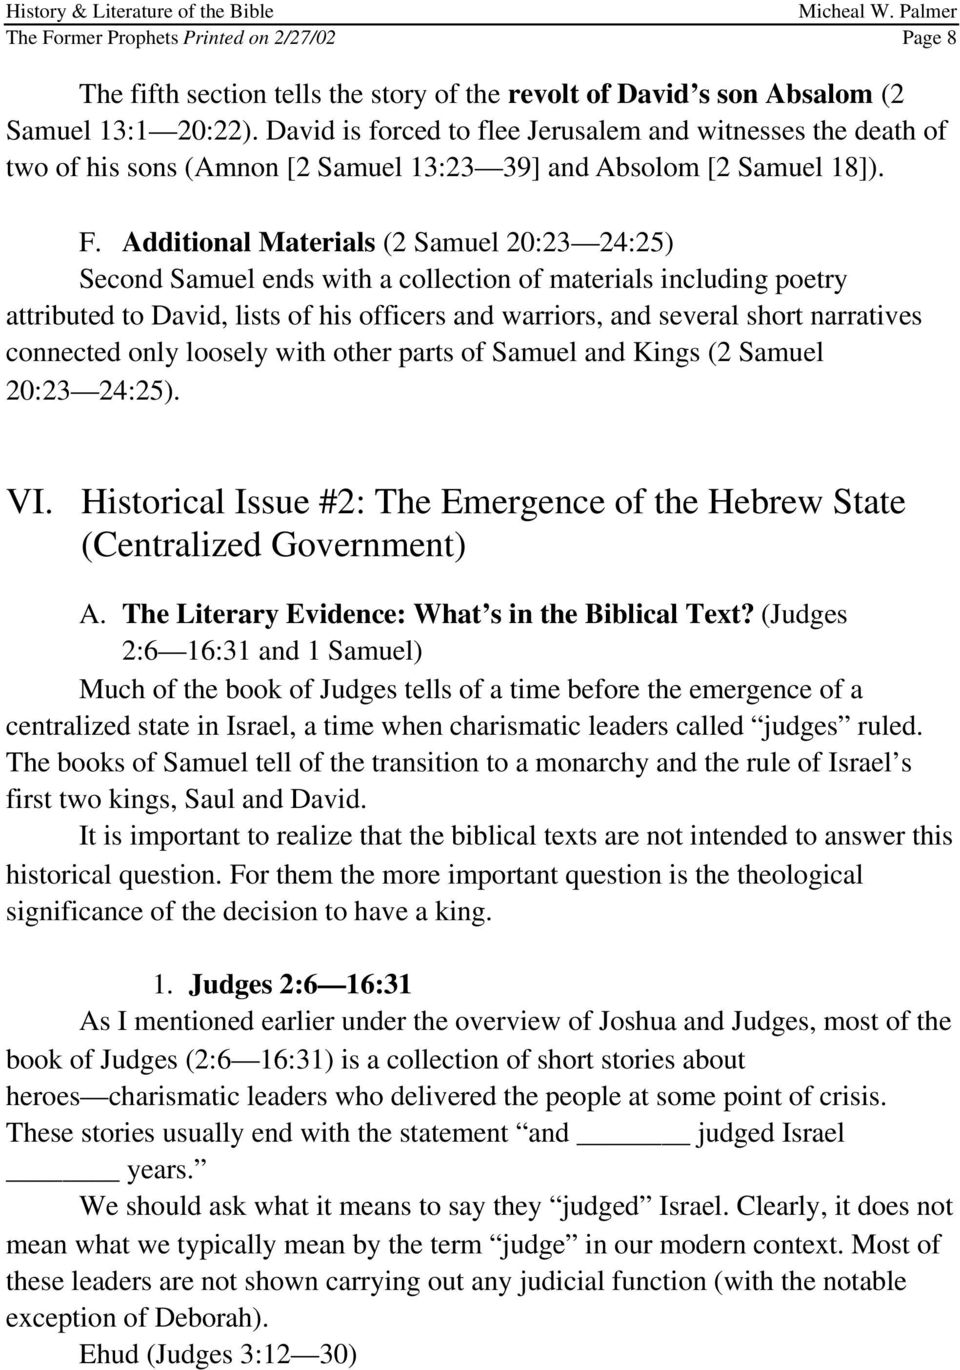 Additional Materials (2 Samuel 20:23 24:25) Second Samuel ends with a collection of materials including poetry attributed to David, lists of his officers and warriors, and several short narratives